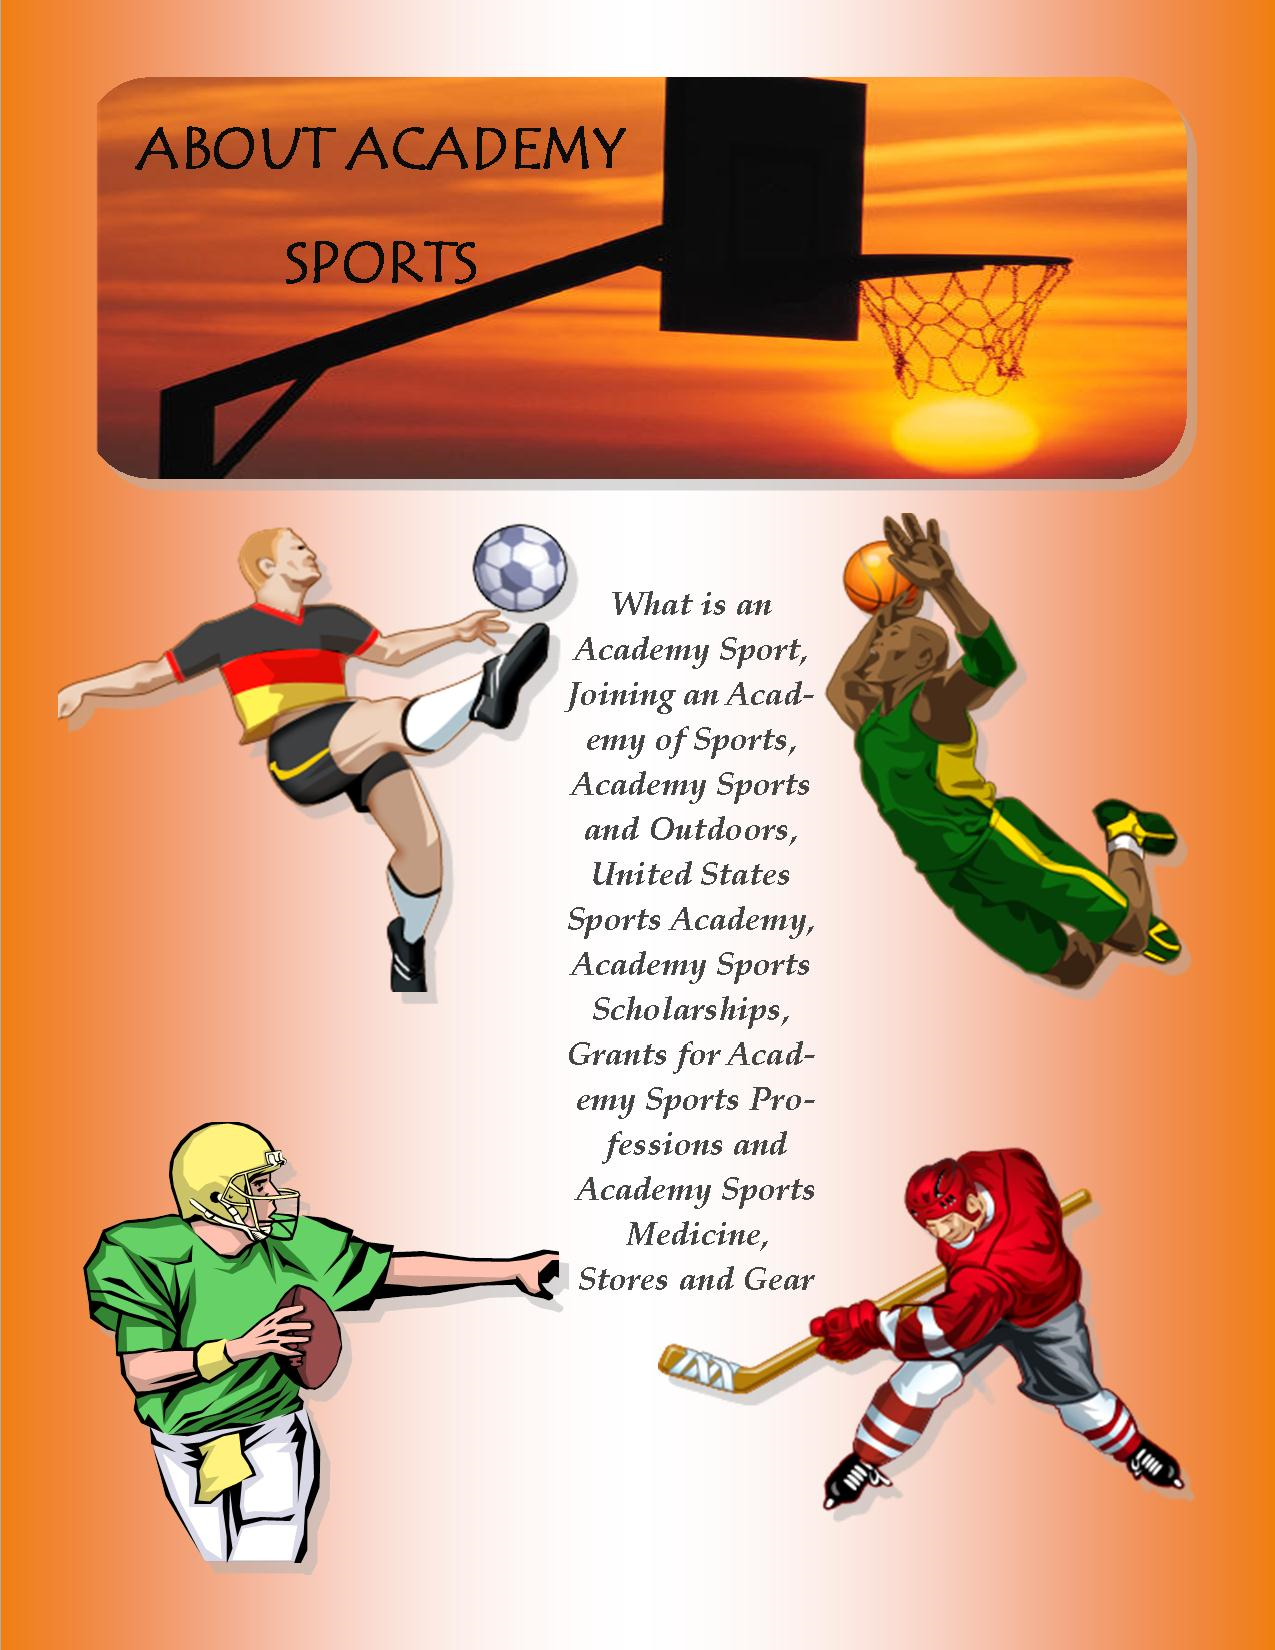 Academy Sports:  What is an Academy Sport, Joining an Academy of Sports, Academy Sports and Outdoors, United States Sports Academy, Academy Sports Scholarships, Grants for Academy Sports Professions and Academy Sports Medicine, Stores and Gear By: Richard M. Stoddard